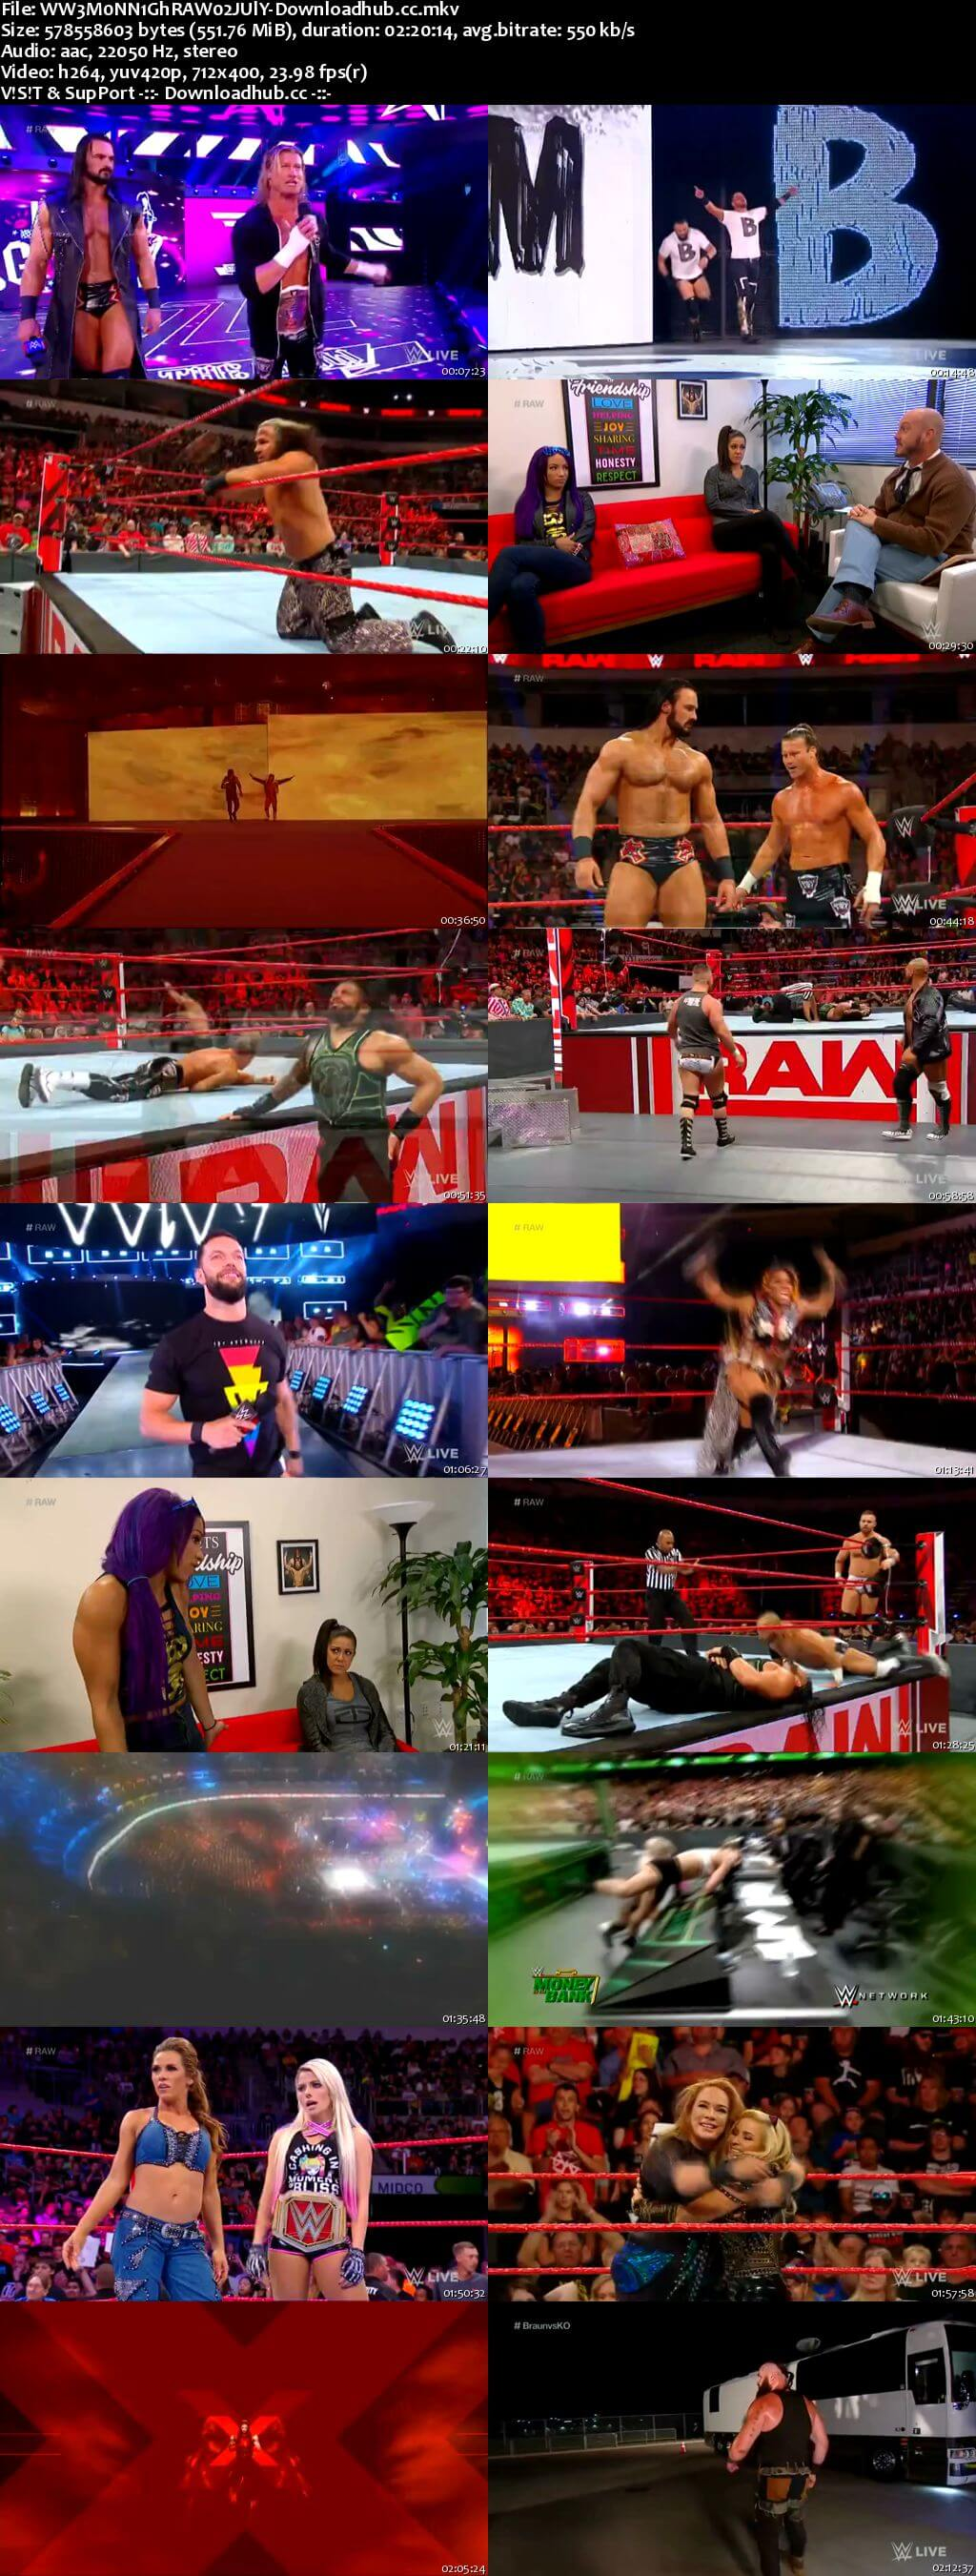 WWE Monday Night Raw 02 July 2018 480p HDTV Download